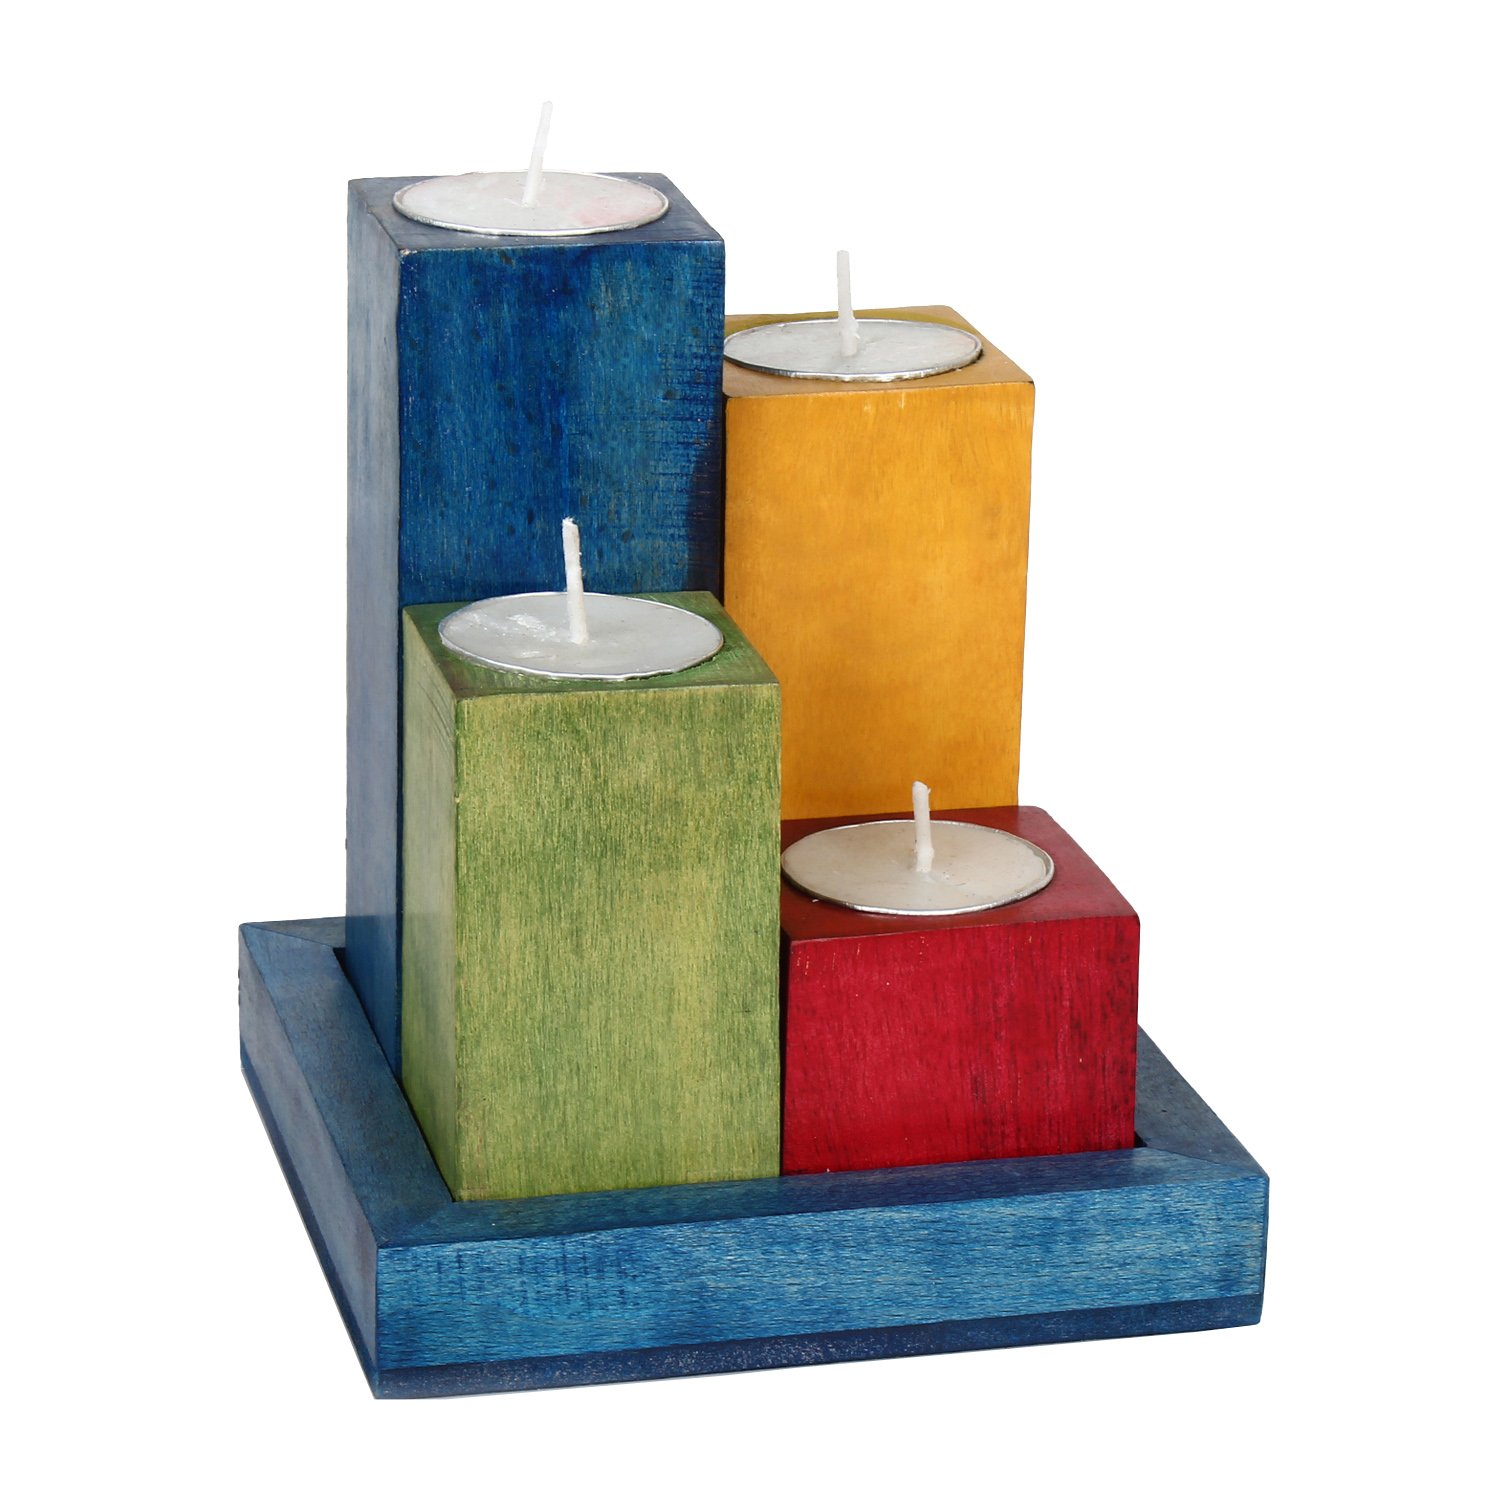 Hashcart Wooden Tealight Candle Holder Set with Tray in Multicolor Finish for Home Decor/Gift / Christmas